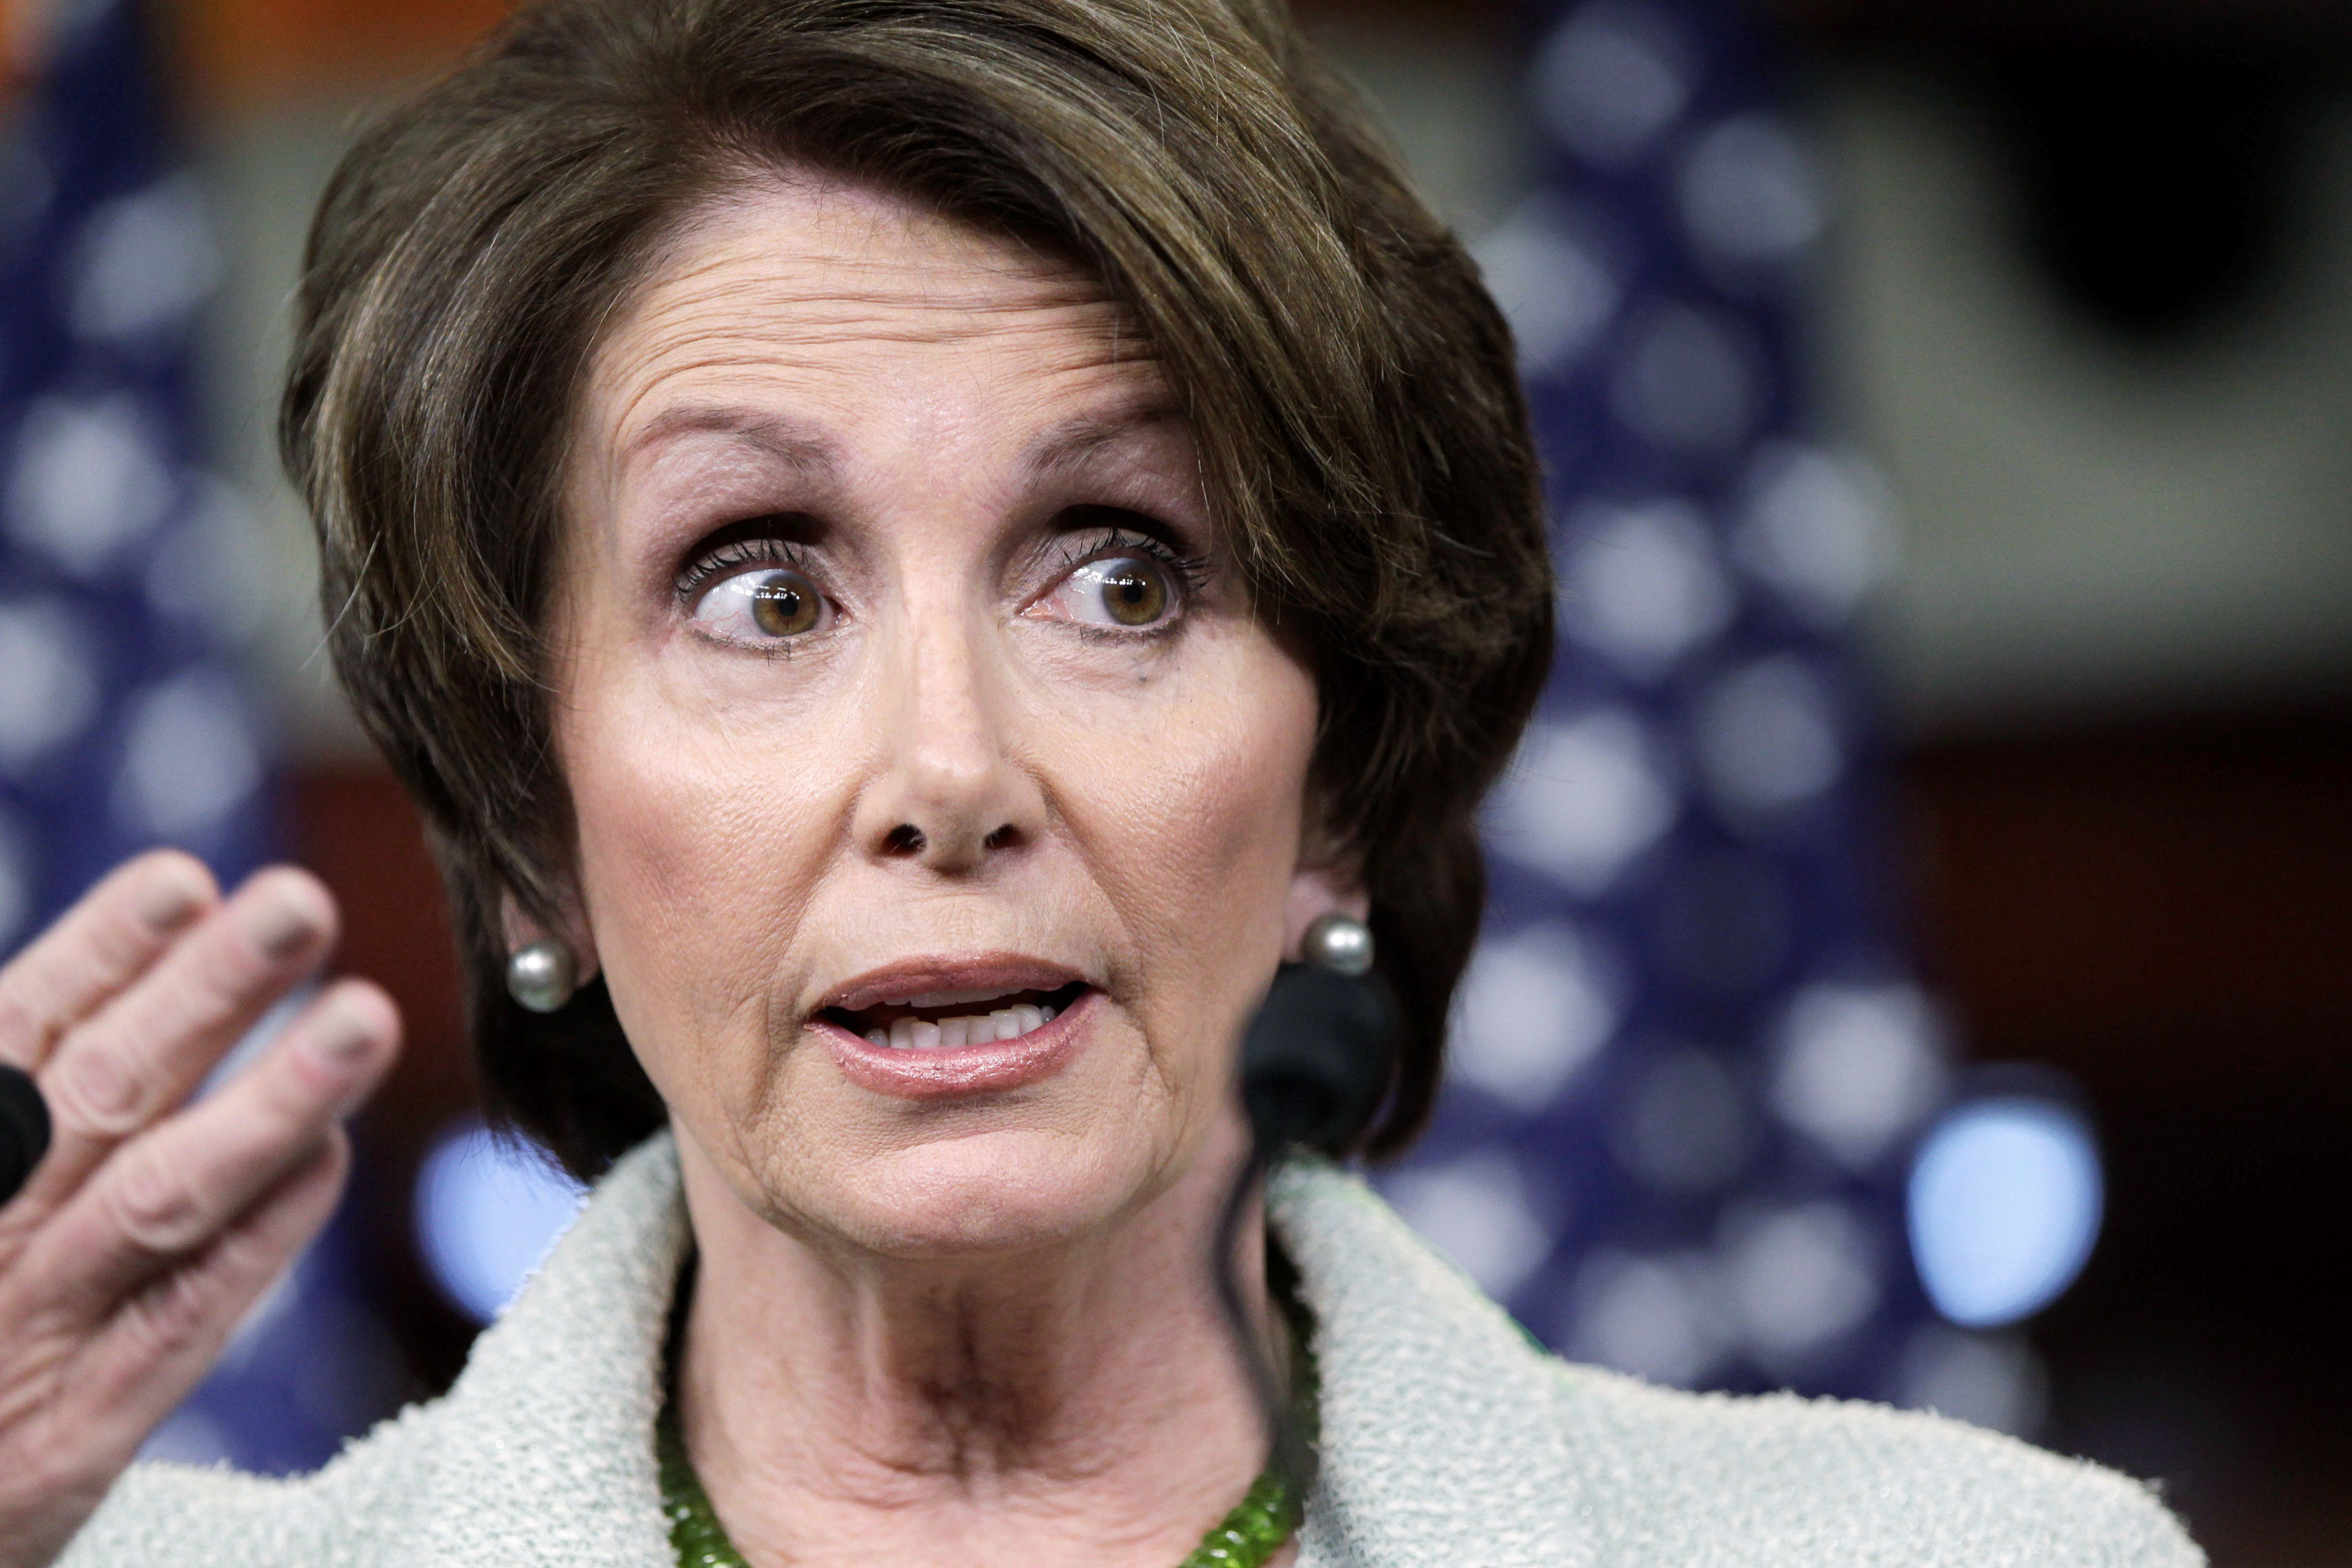 Pelosi, plastic surgery and the expression of emotion in politics